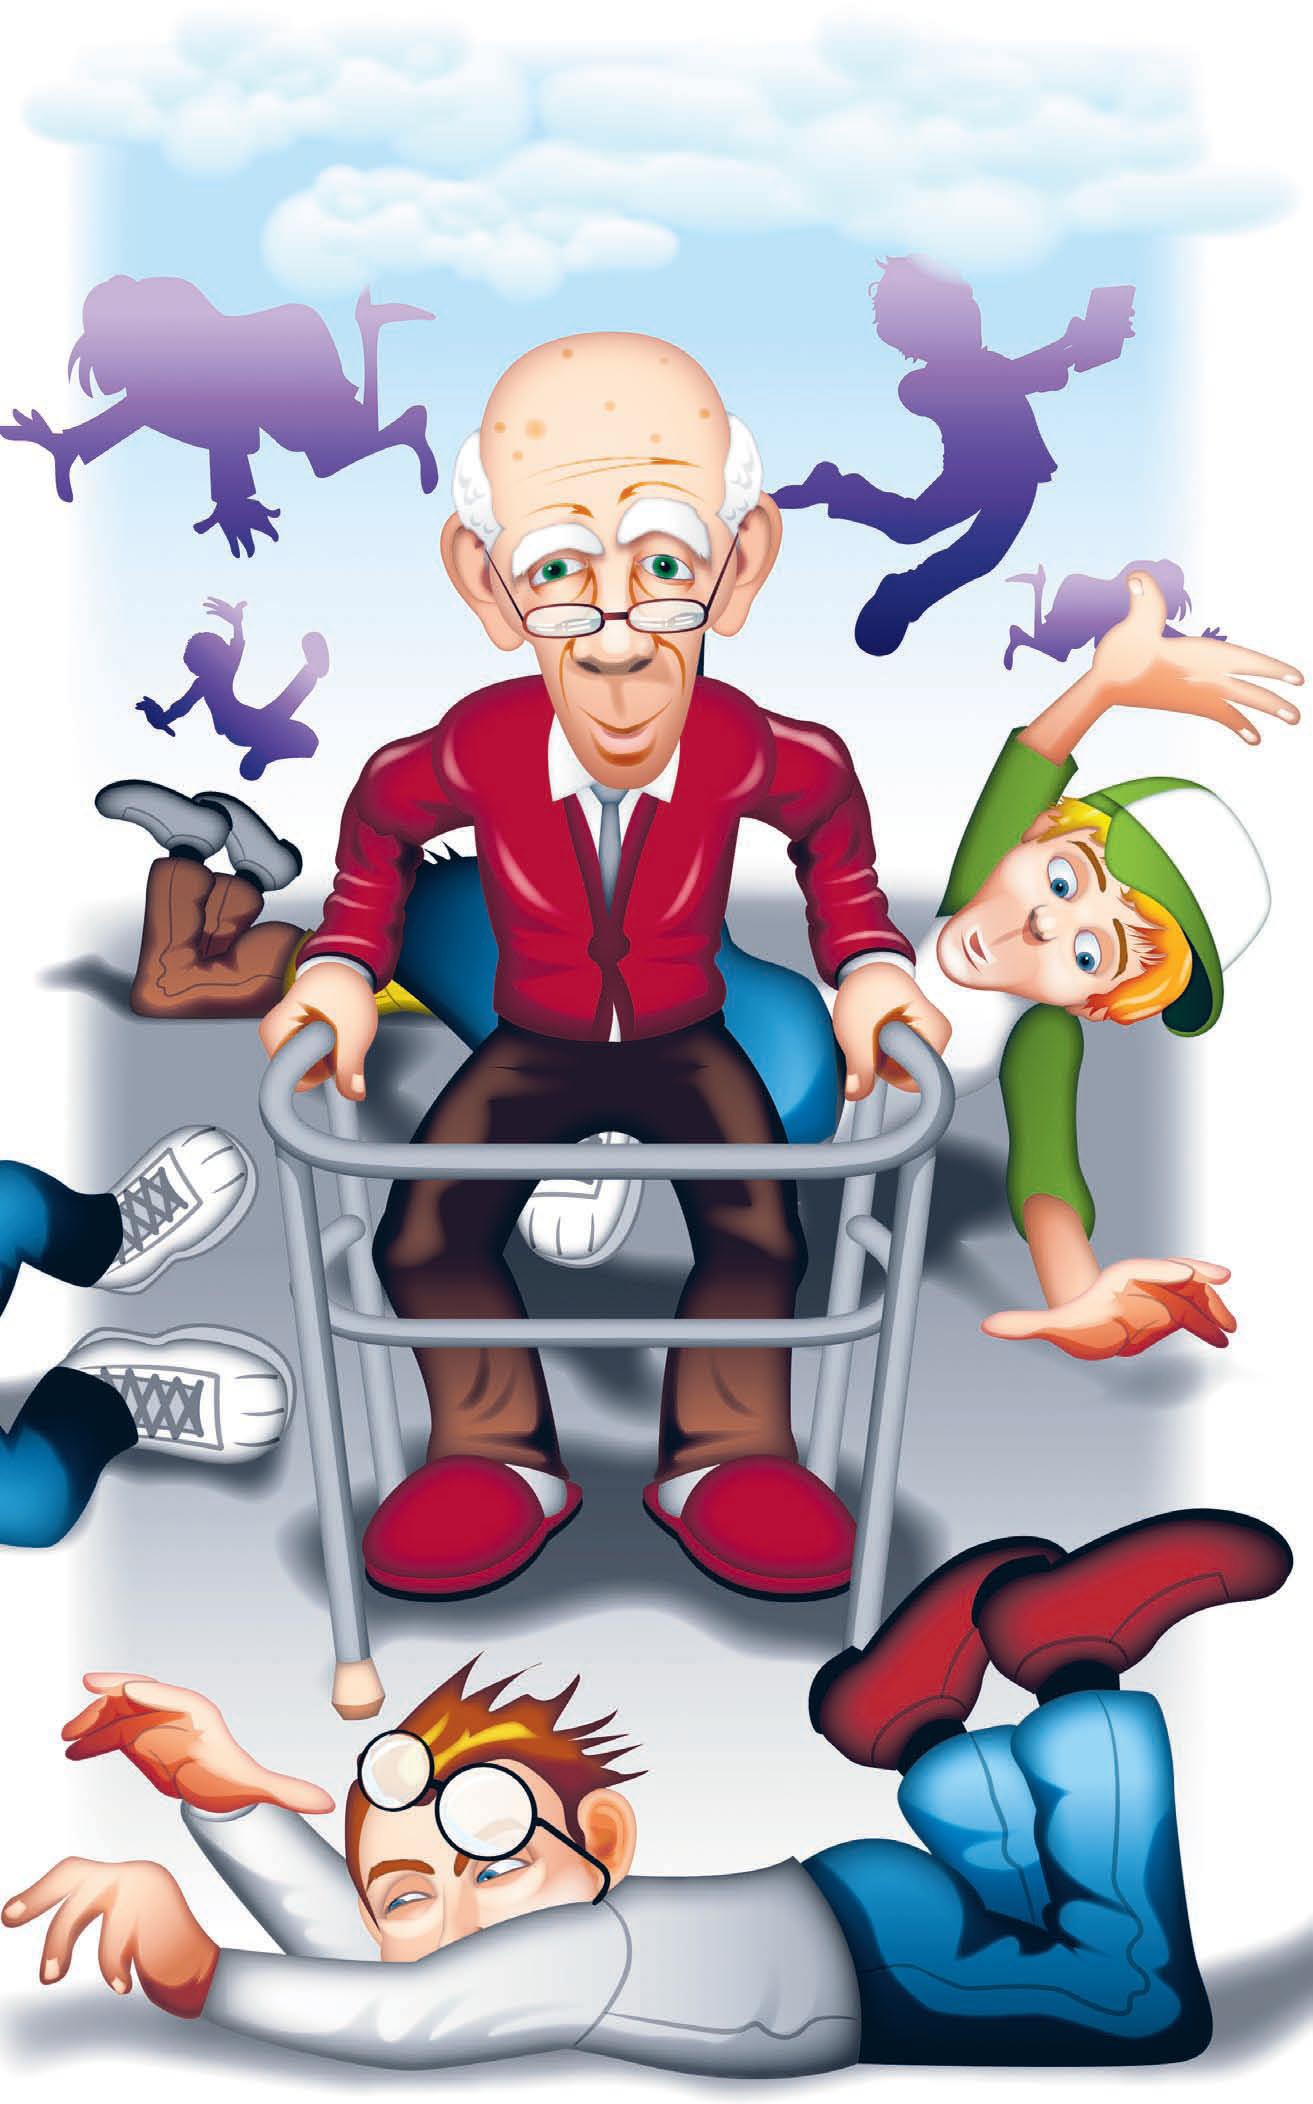 fall prevention in older adults Who benefits from balance matters® and step & connect services older adults who would like to prevent falls.